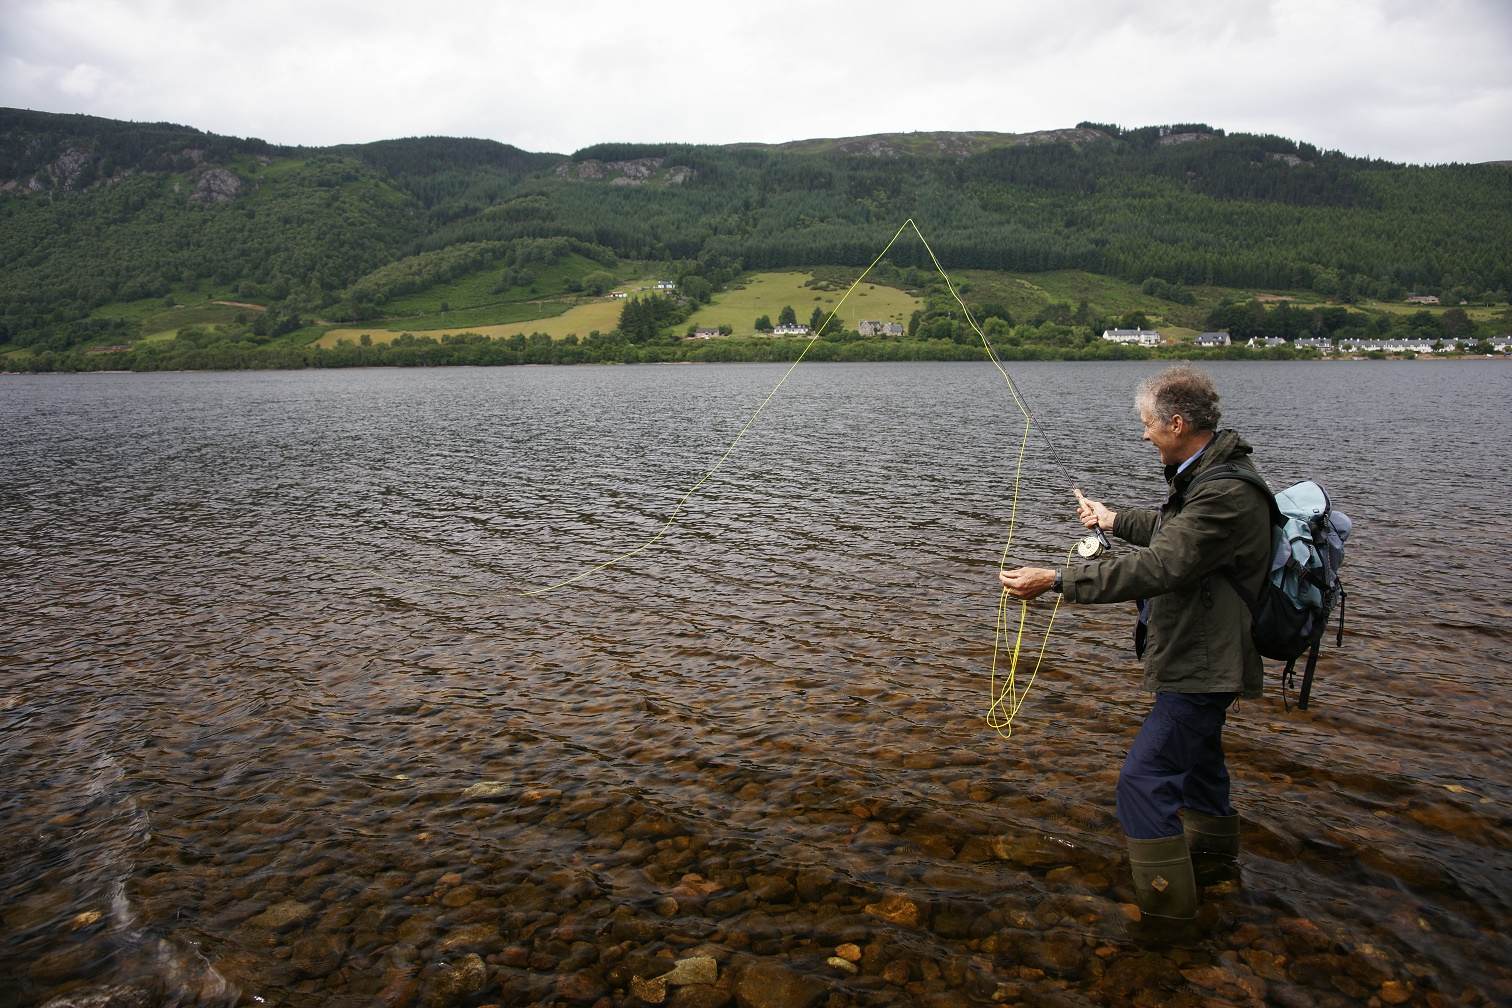 Fishing - Loch Ness Holiday Activities